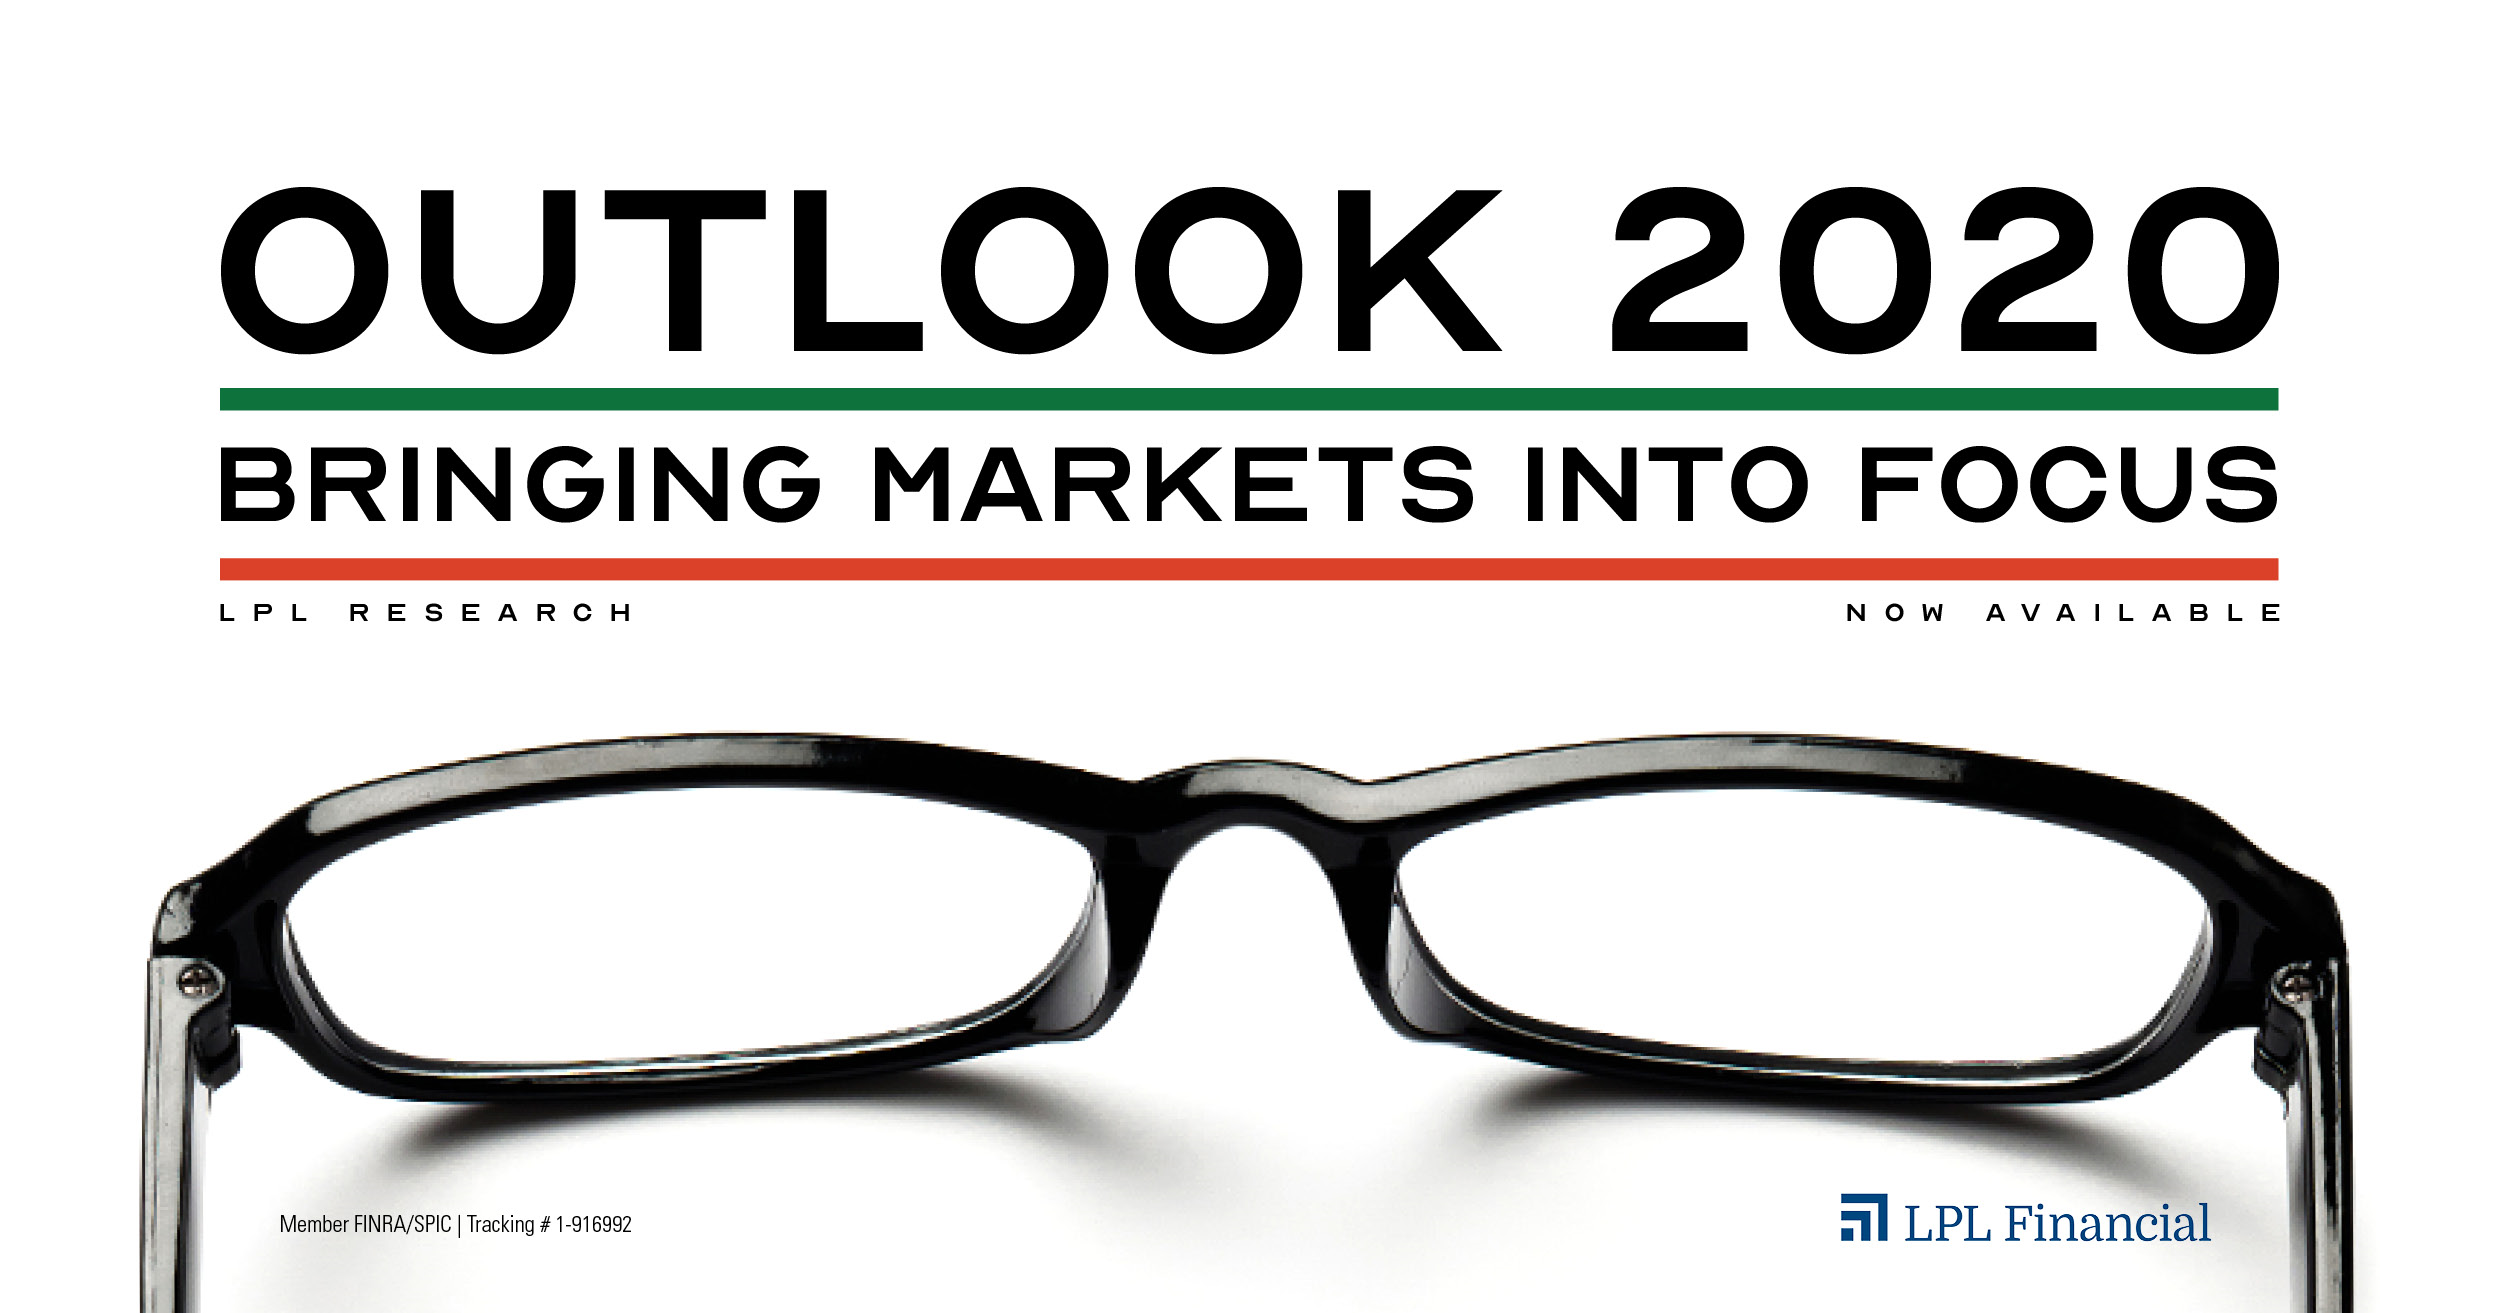 Outlook 2020 Thumbnail